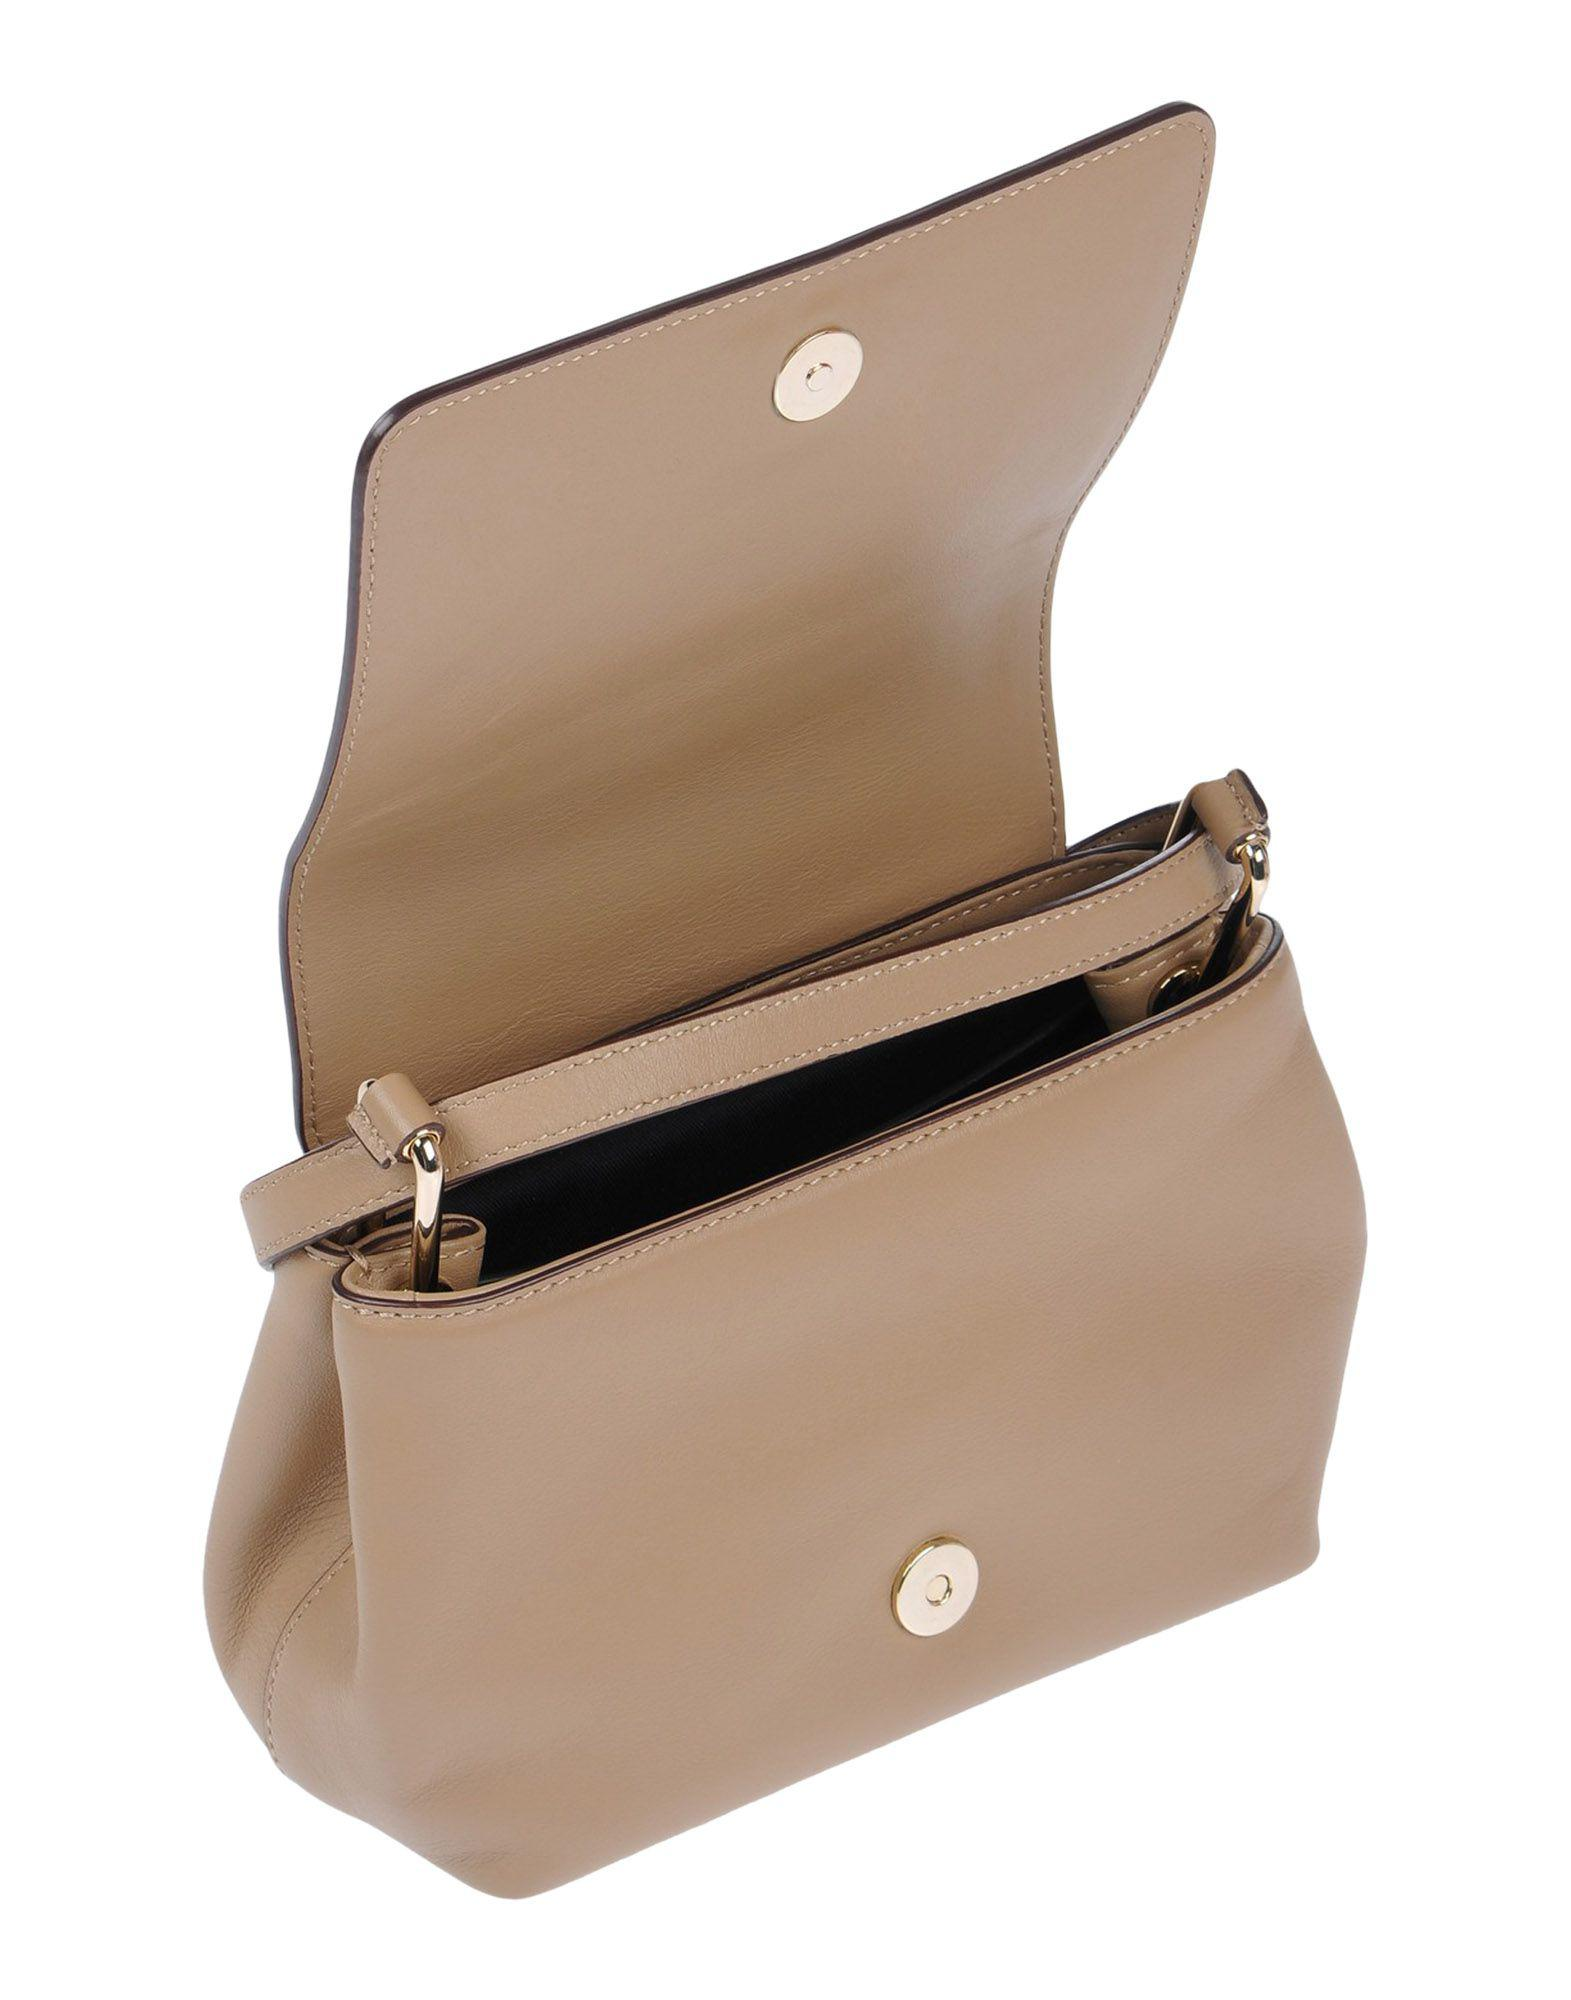 DKNY Leather Cross-body Bag in Khaki (Natural)